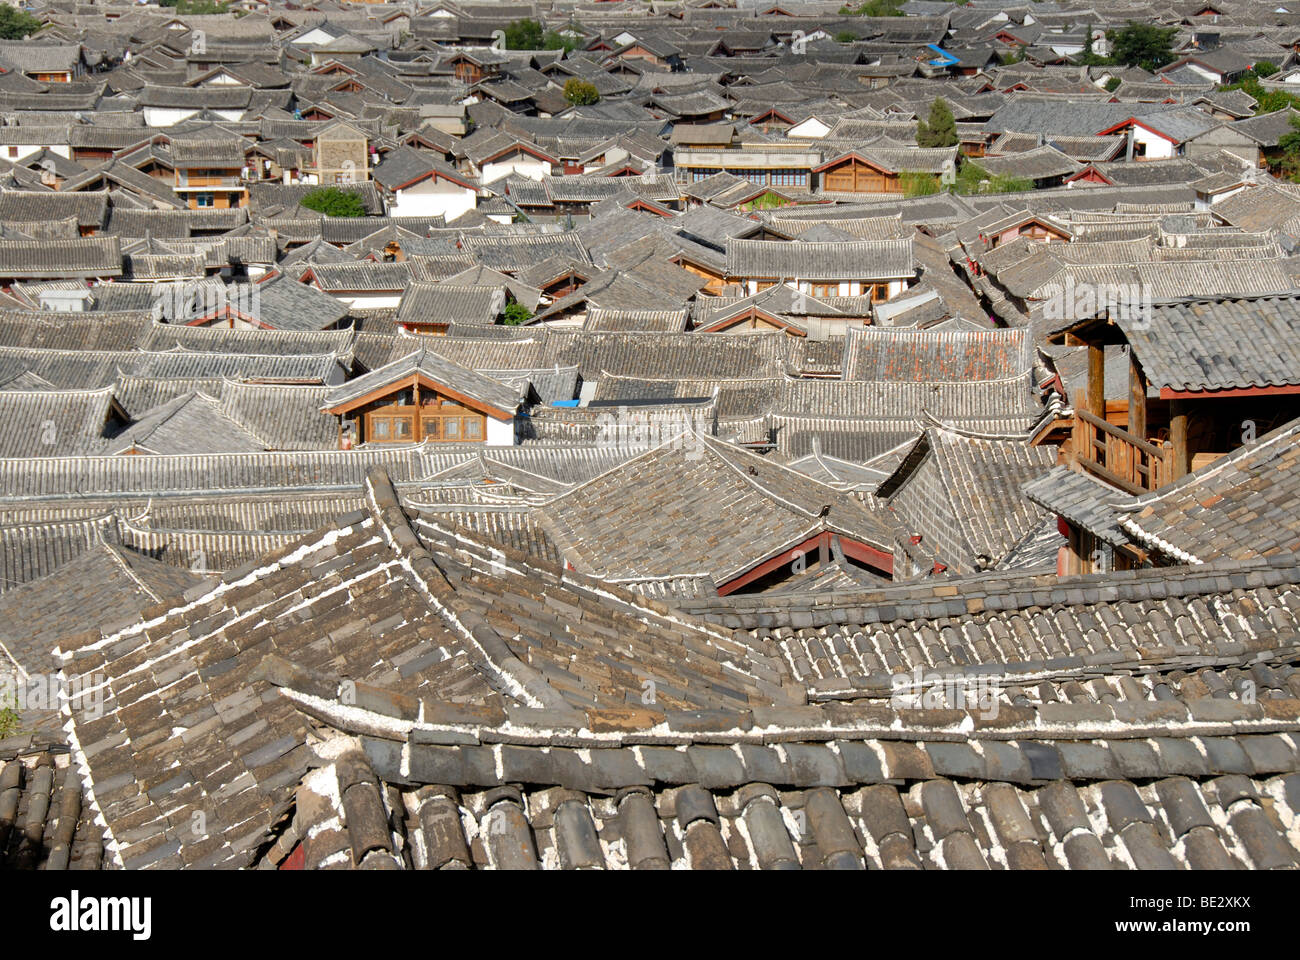 Tiled roofs, old town of Lijiang, UNESCO World Heritage Site, Yunnan Province, People's Republic of China, Asia - Stock Image